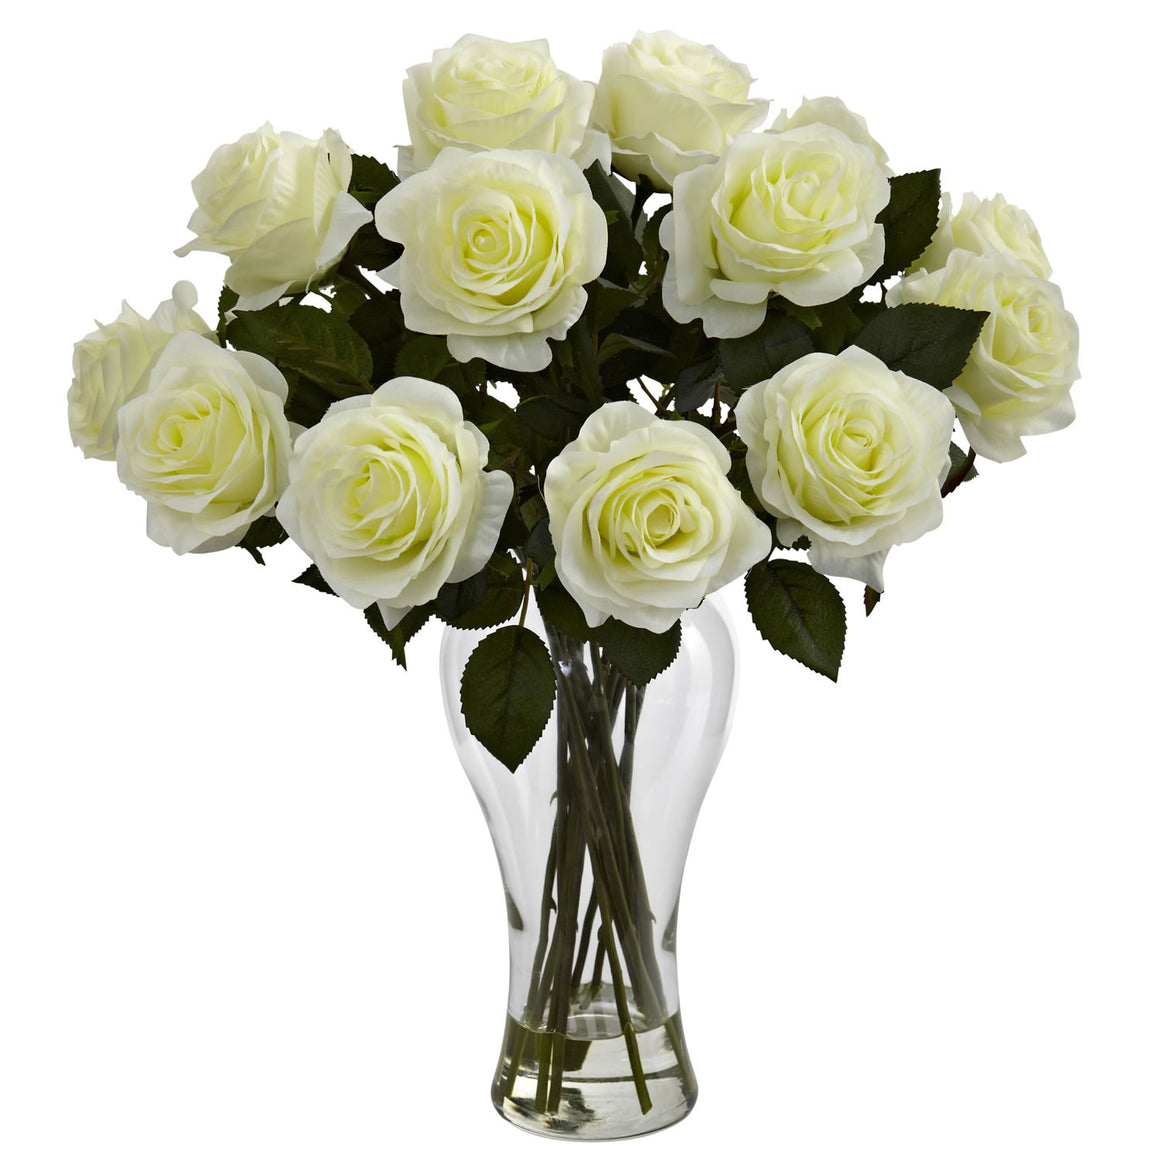 Blooming White Silk Roses